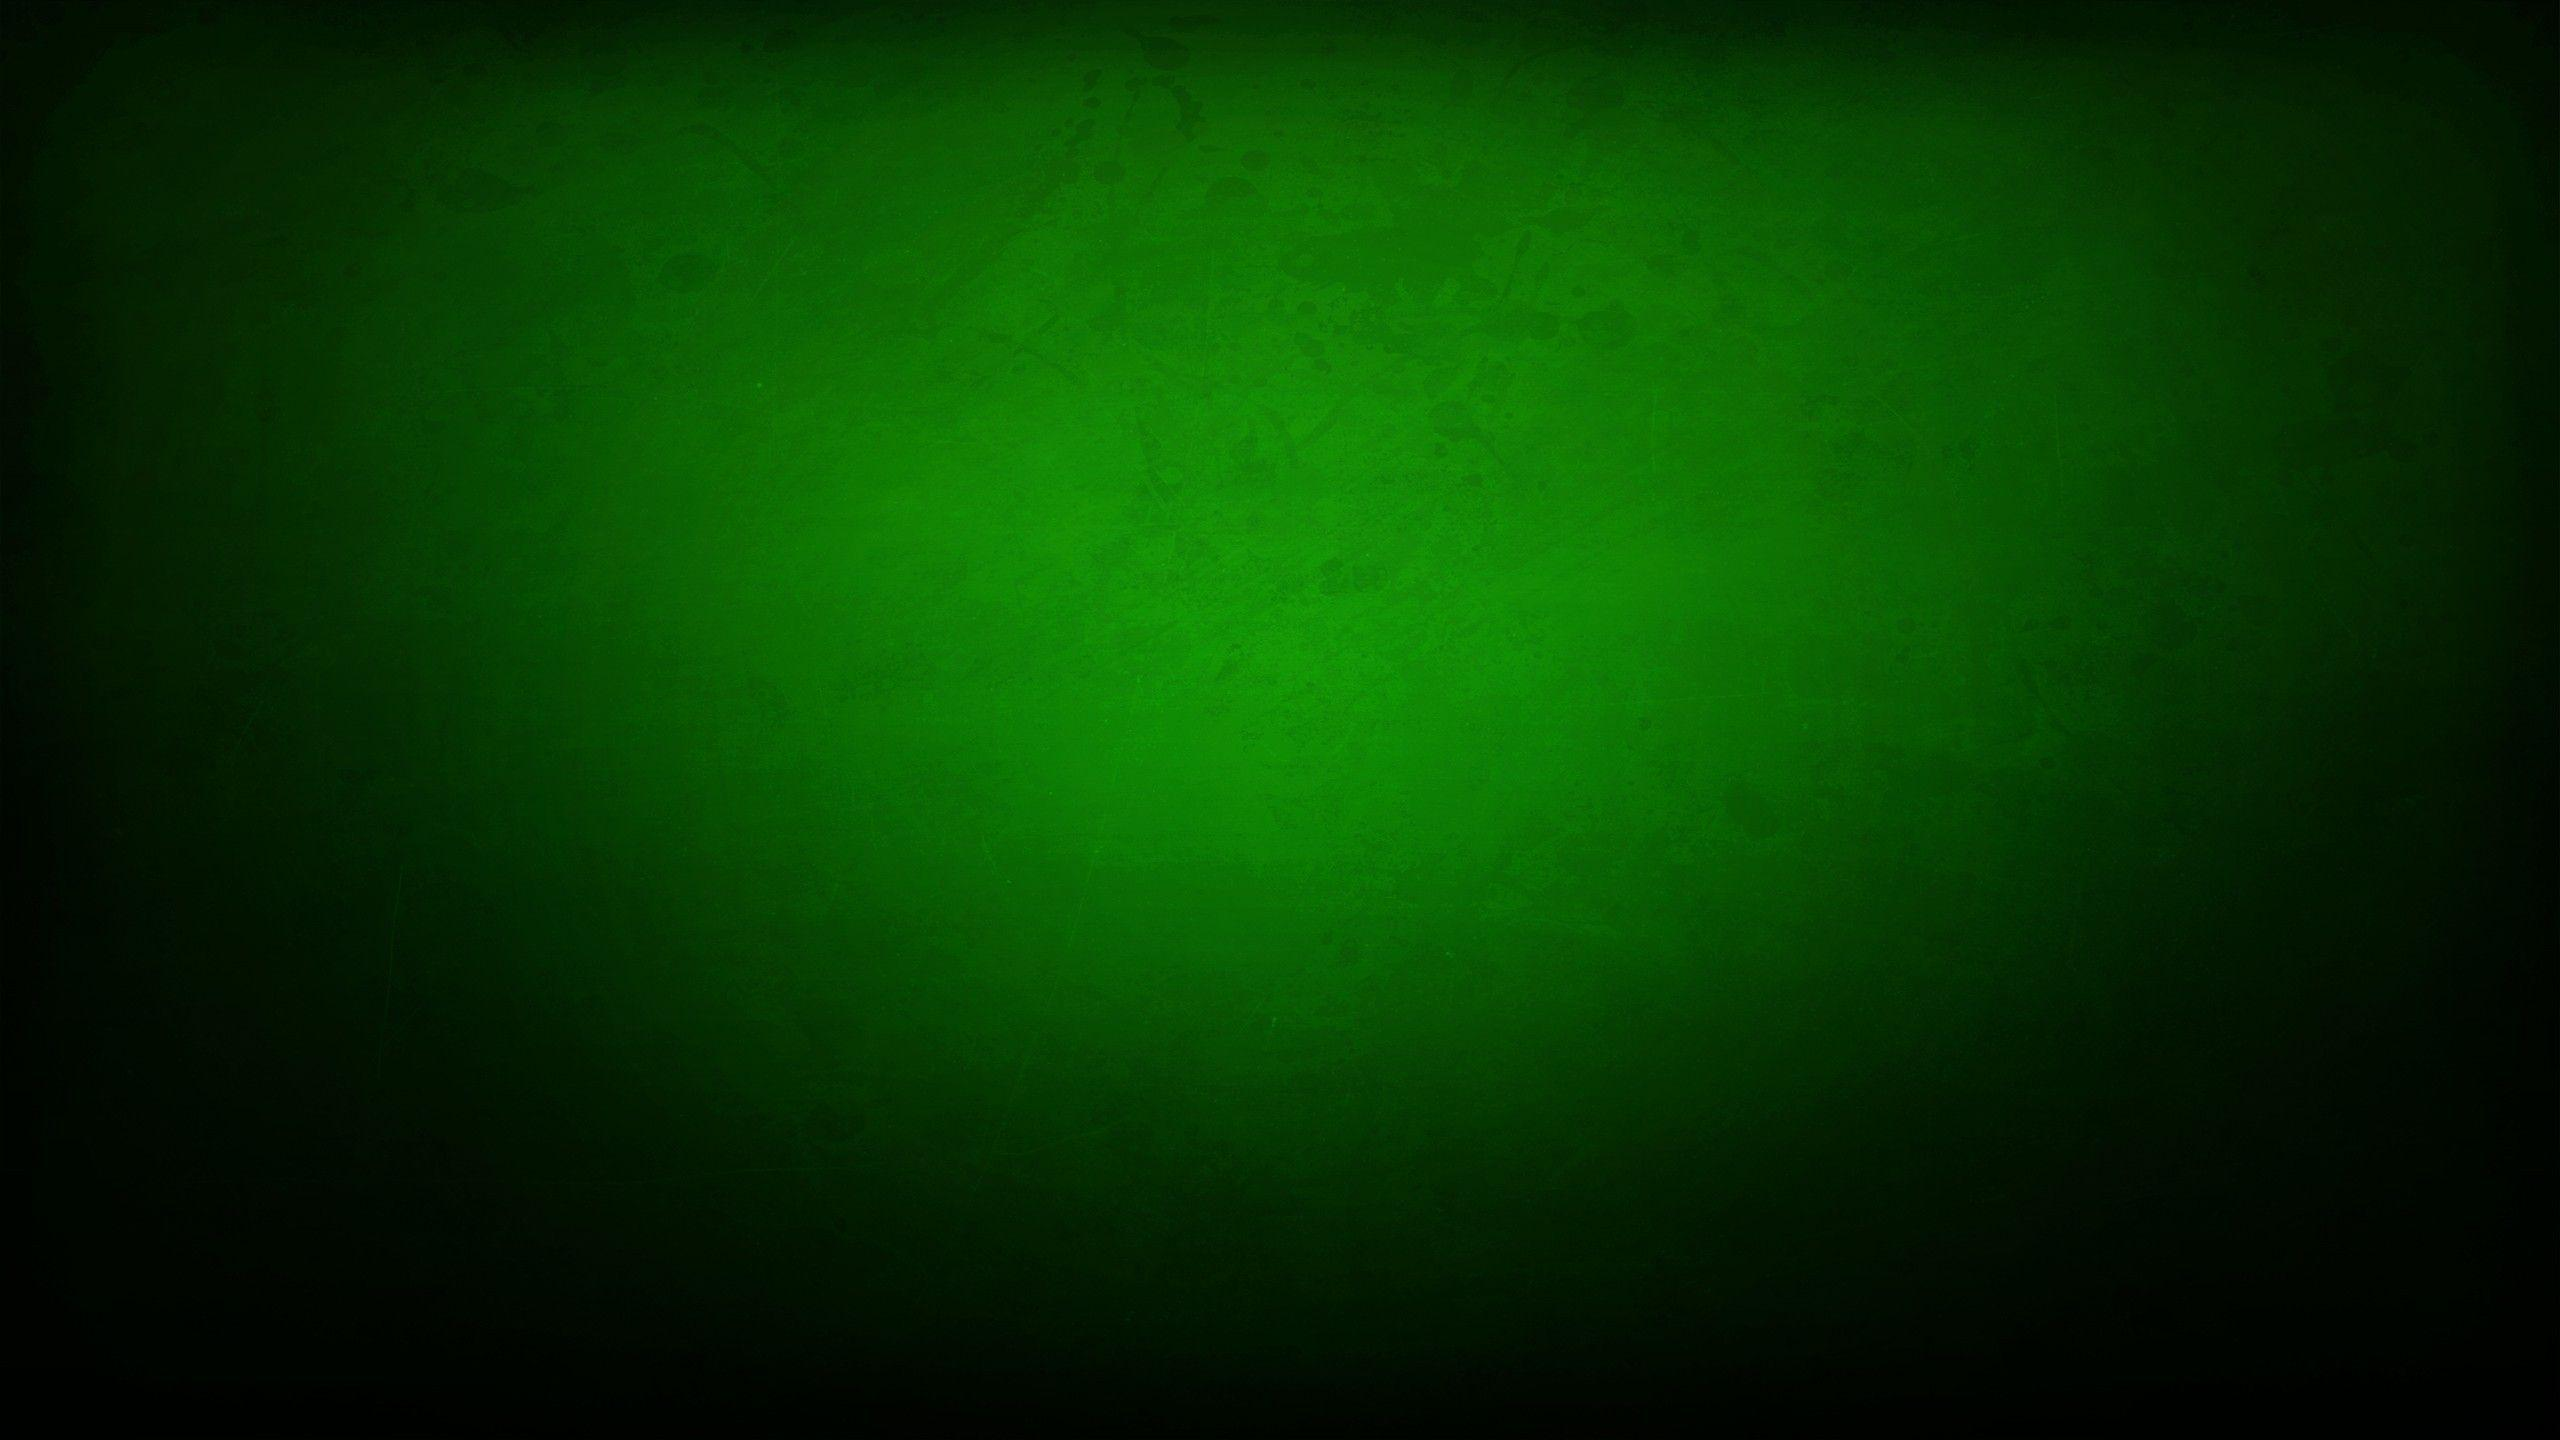 green background hd 3d - photo #28